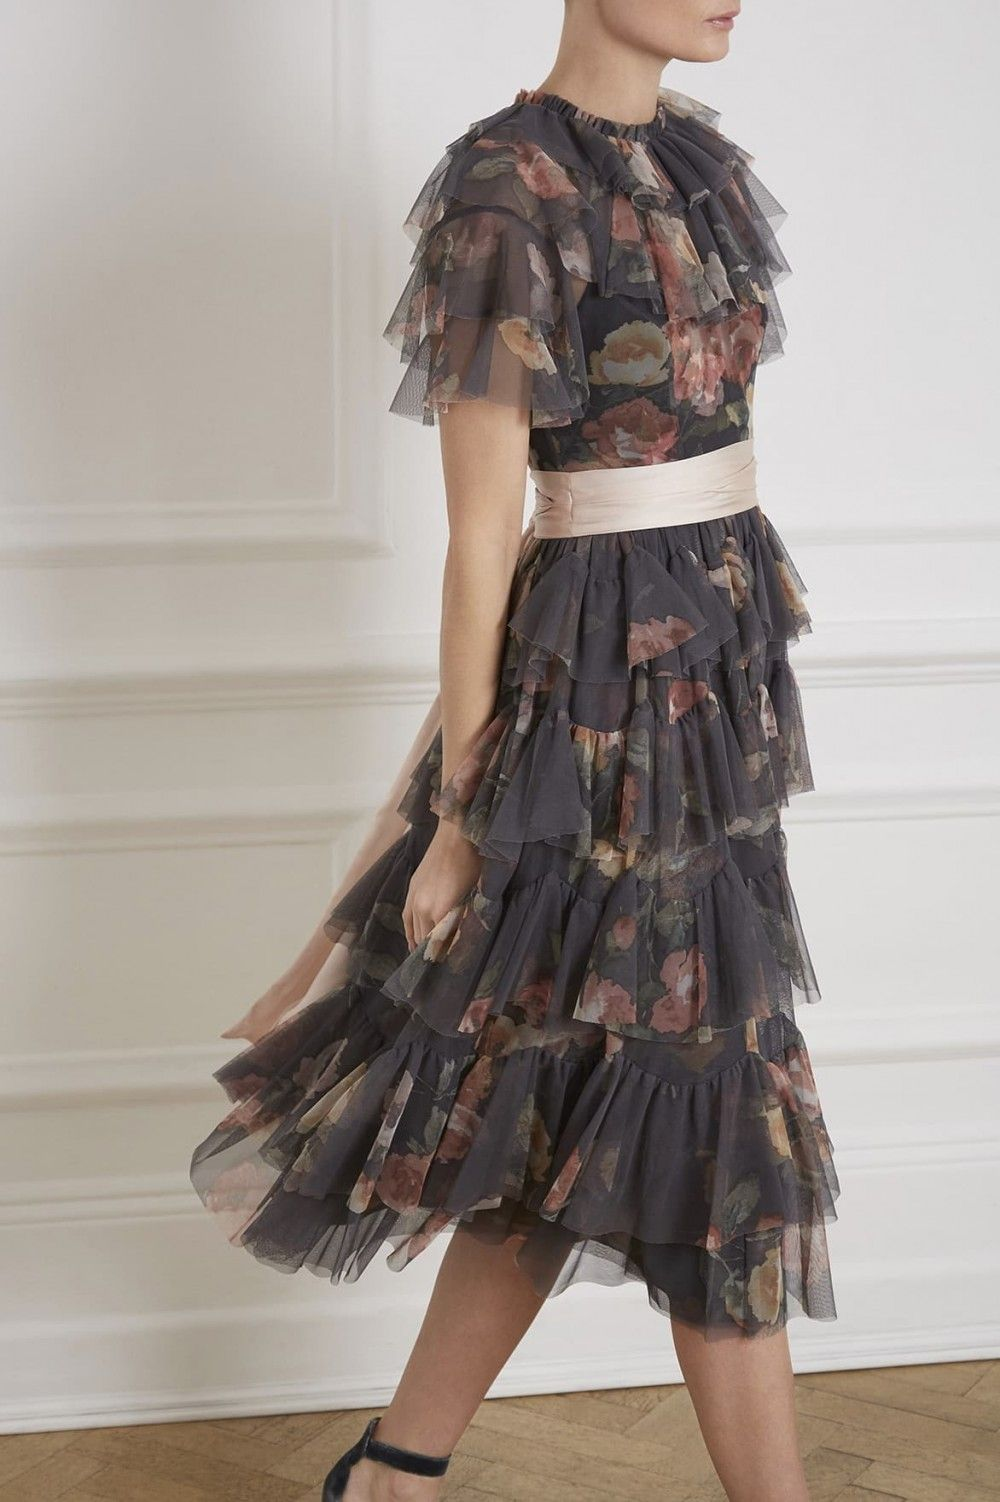 66e6750d68 Venetian Rose Tulle Dress in Graphite from the Needle & Thread PS19  Collection